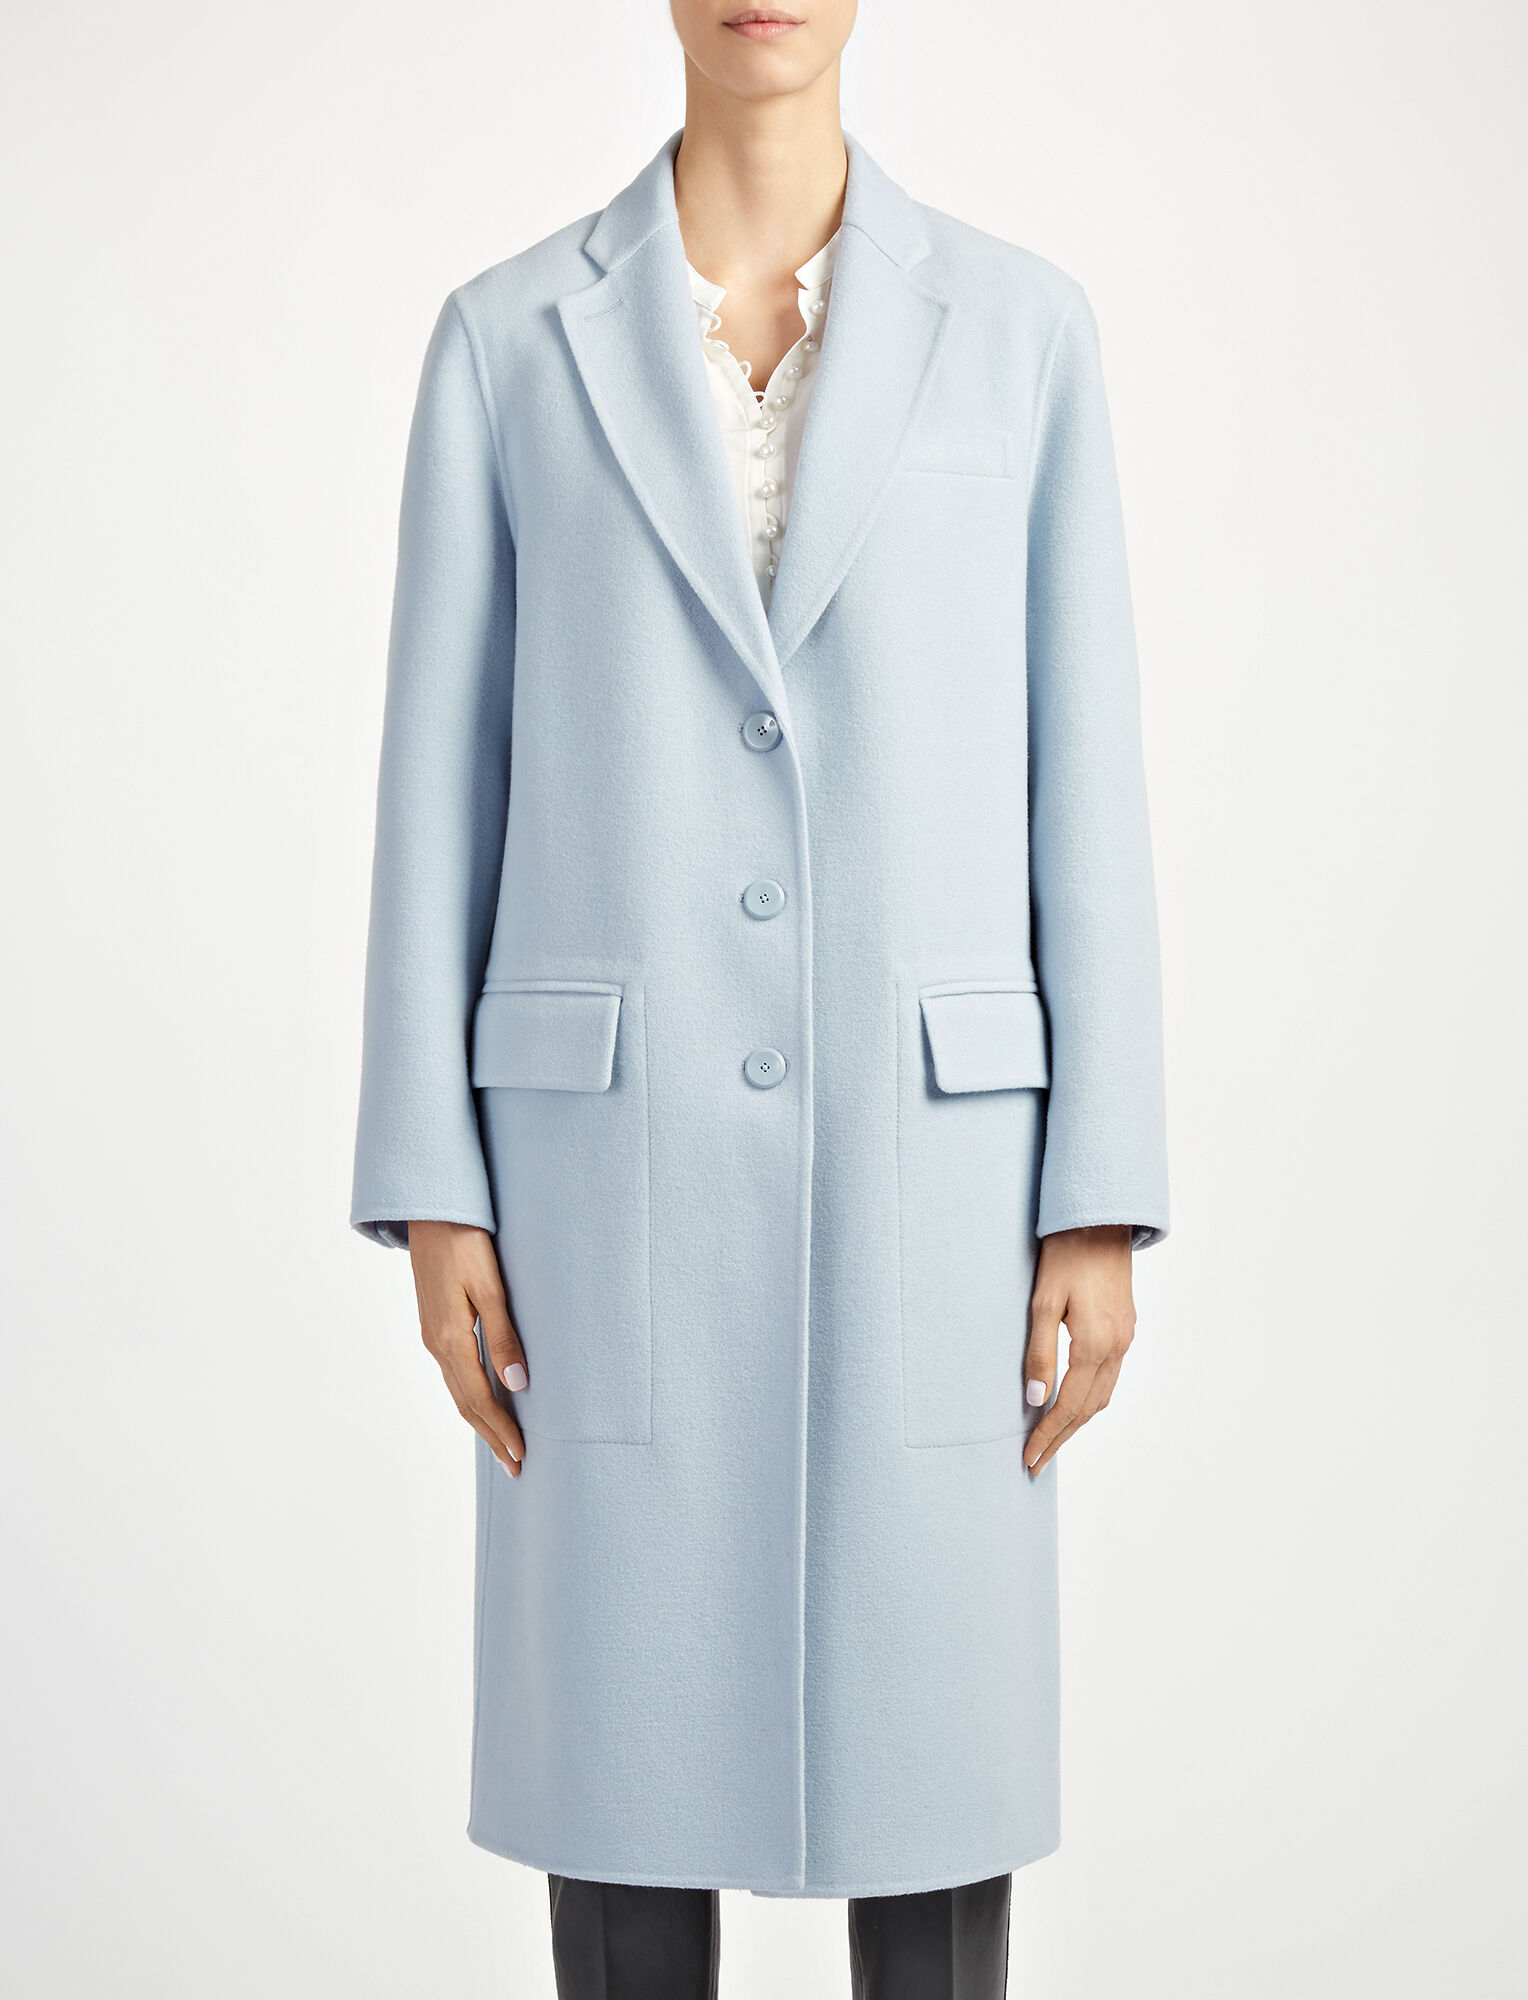 Joseph, Double Face Wool Simo Coat, in POWDER BLUE